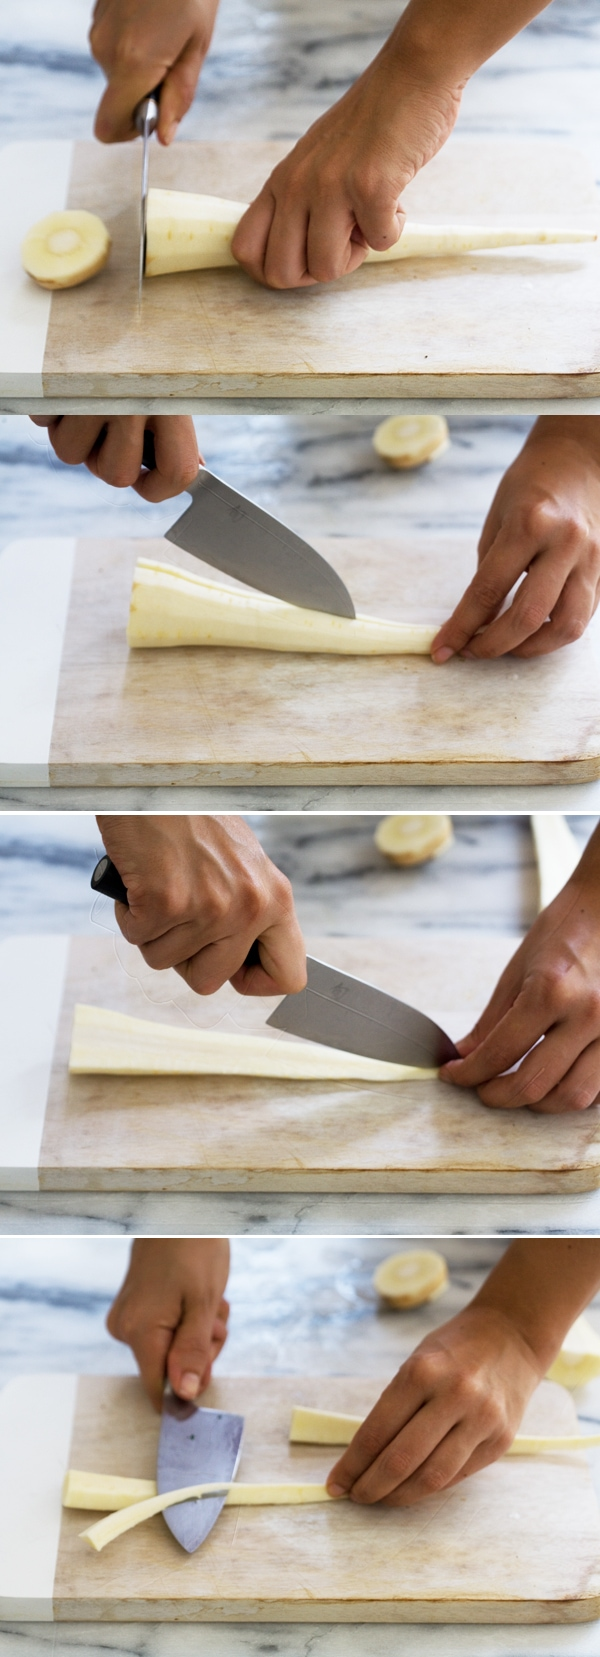 How to Cut a Parsnip // www.acozykitchen.com